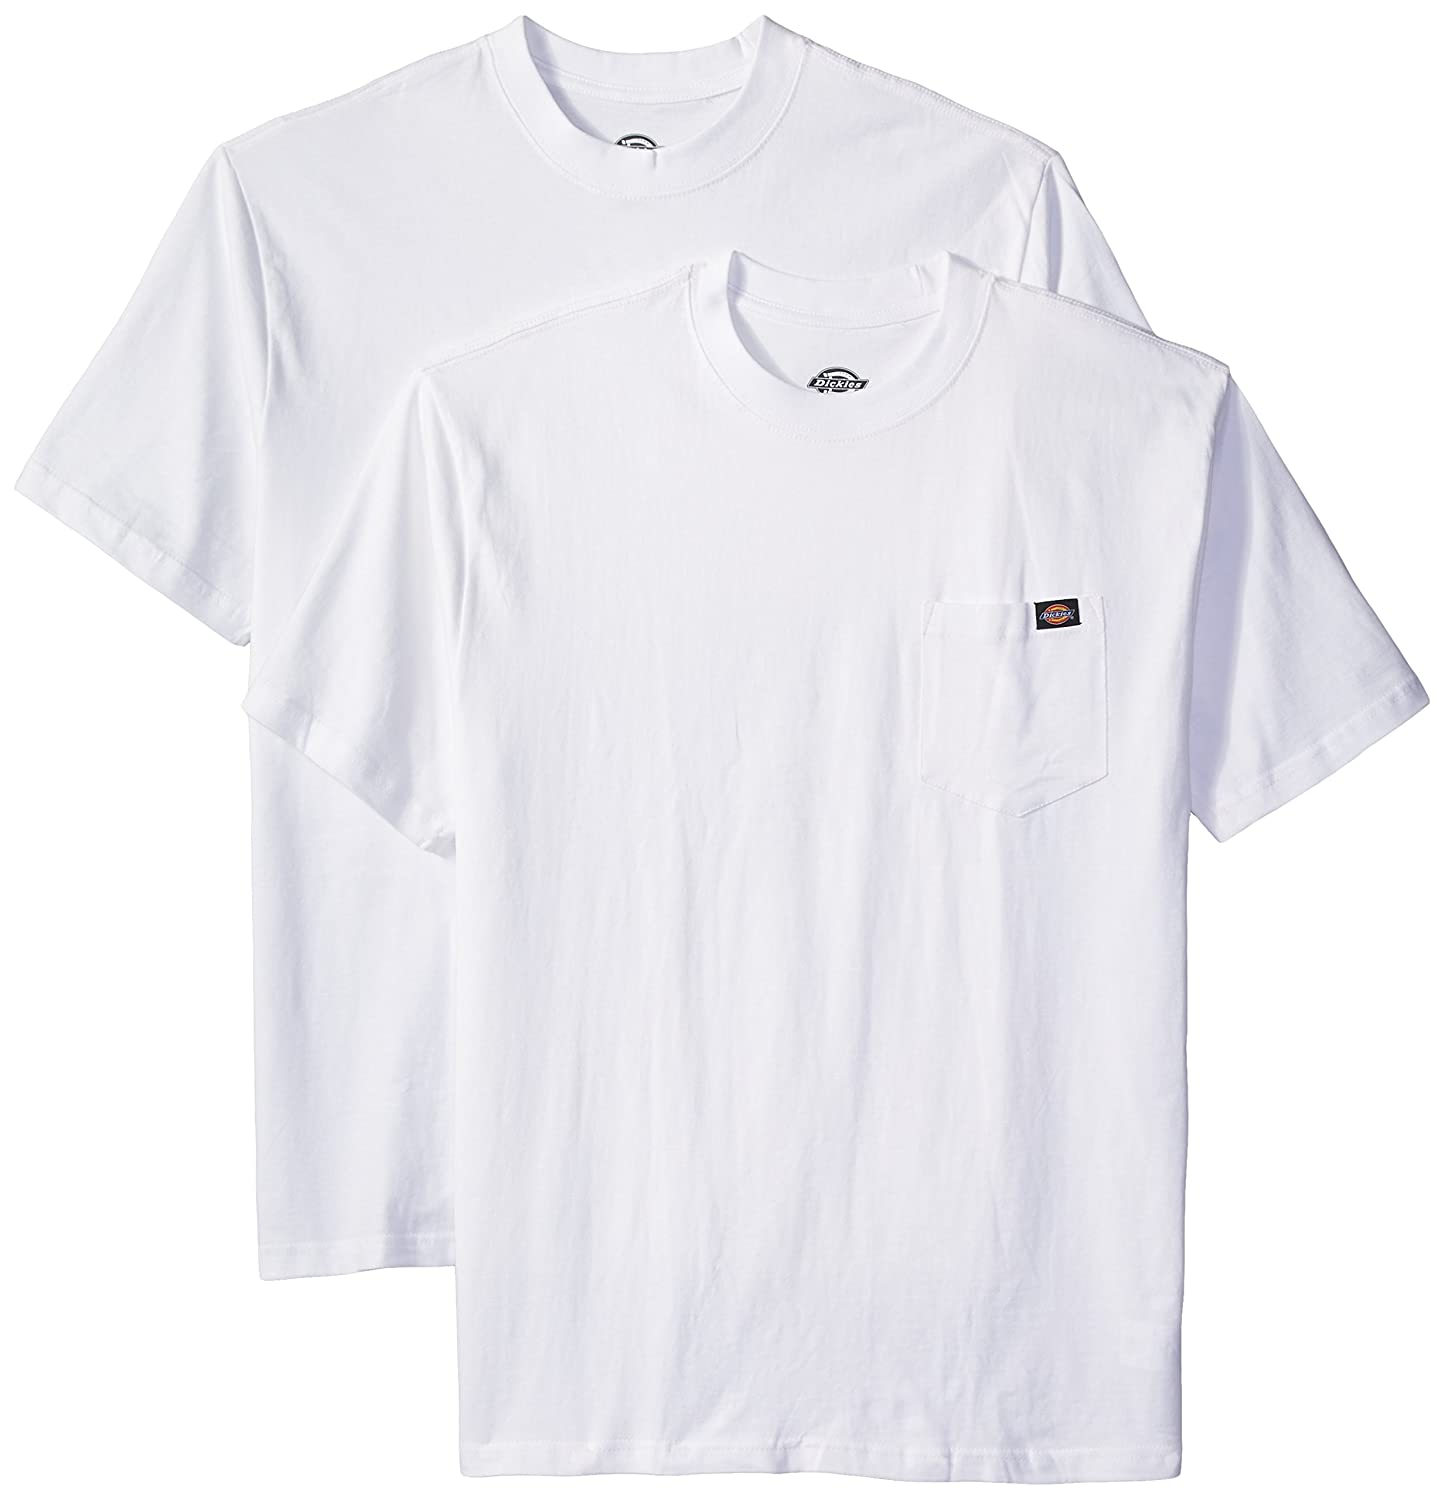 Dickies Men's 2-Pack Short-Sleeve Pocket T-Shirts Dickies Men's Sportswear 1144624